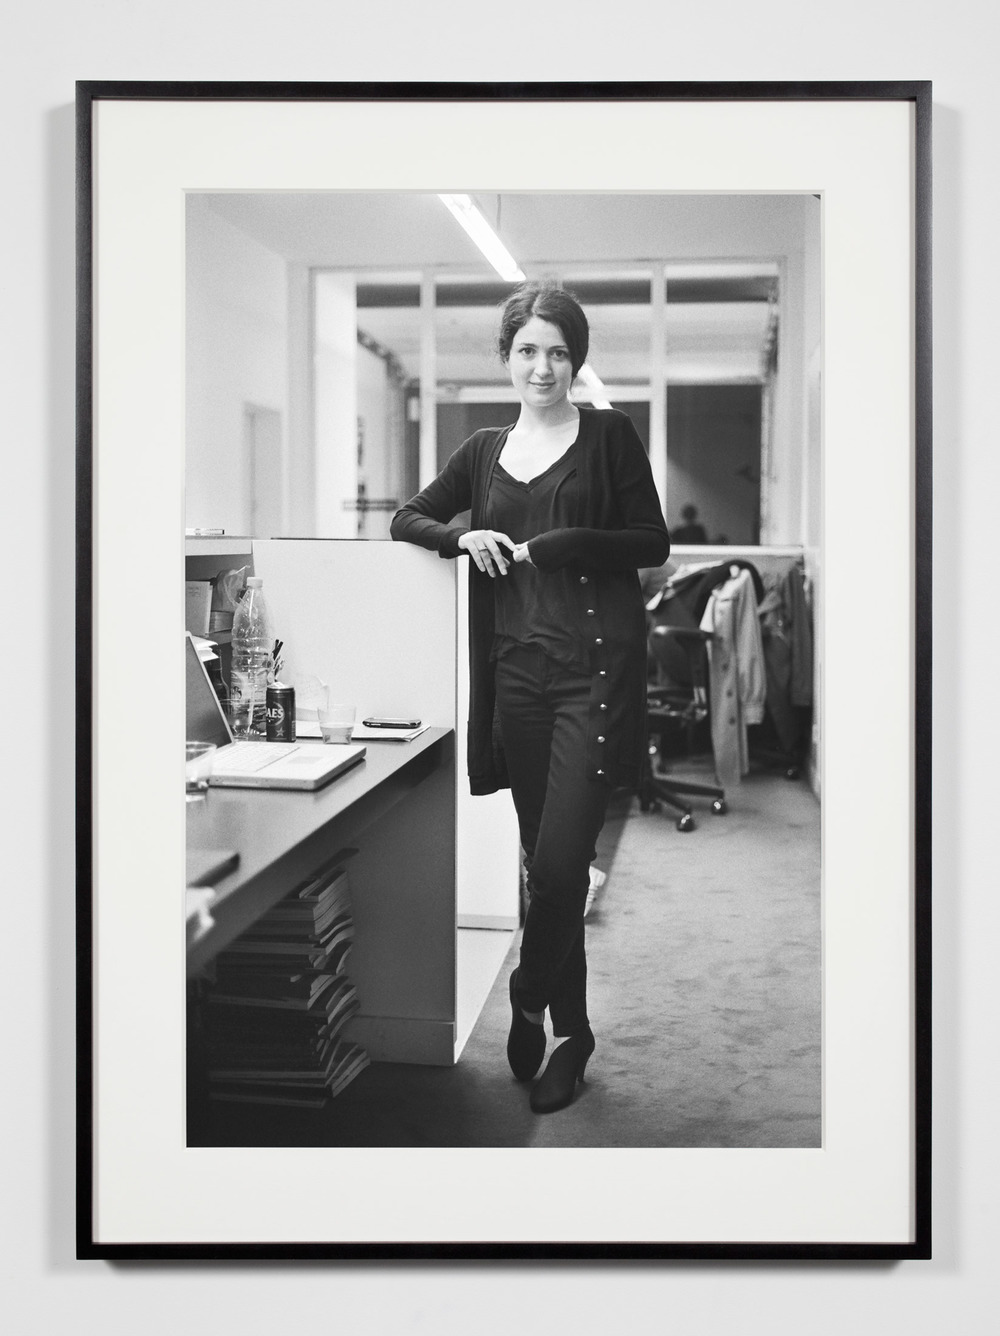 Gallery Owner/Director, Brussels, Belgium, November 8, 2008    2011   Epson Ultrachrome K3 archival ink jet print on Hahnemühle Photo Rag paper  36 3/8 x 26 3/8 inches   Industrial Portraits, 2008–